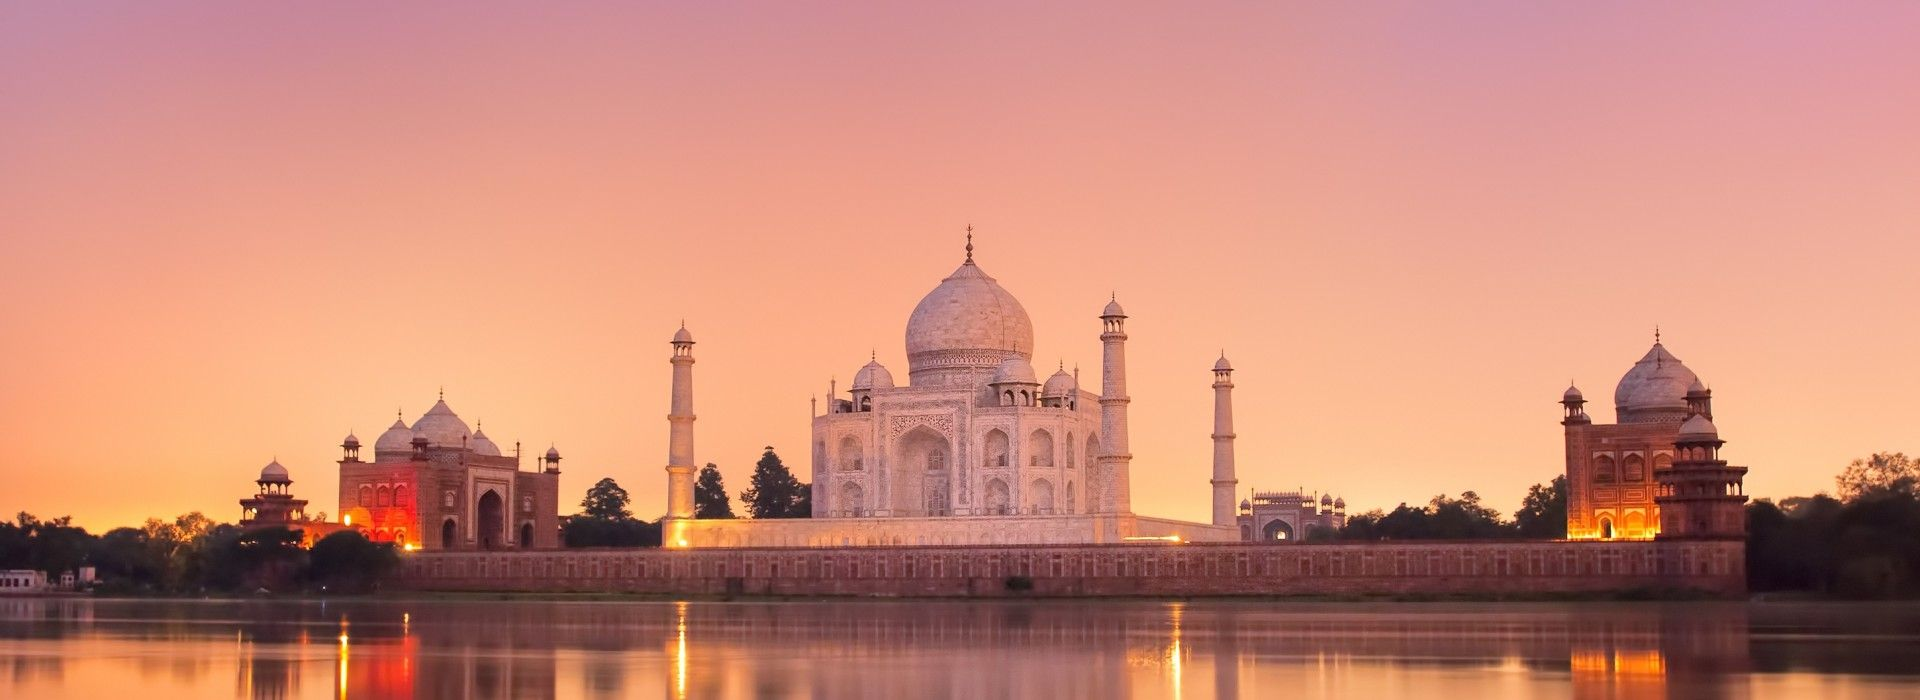 Boat tours, water sports and marine wildlife in Agra